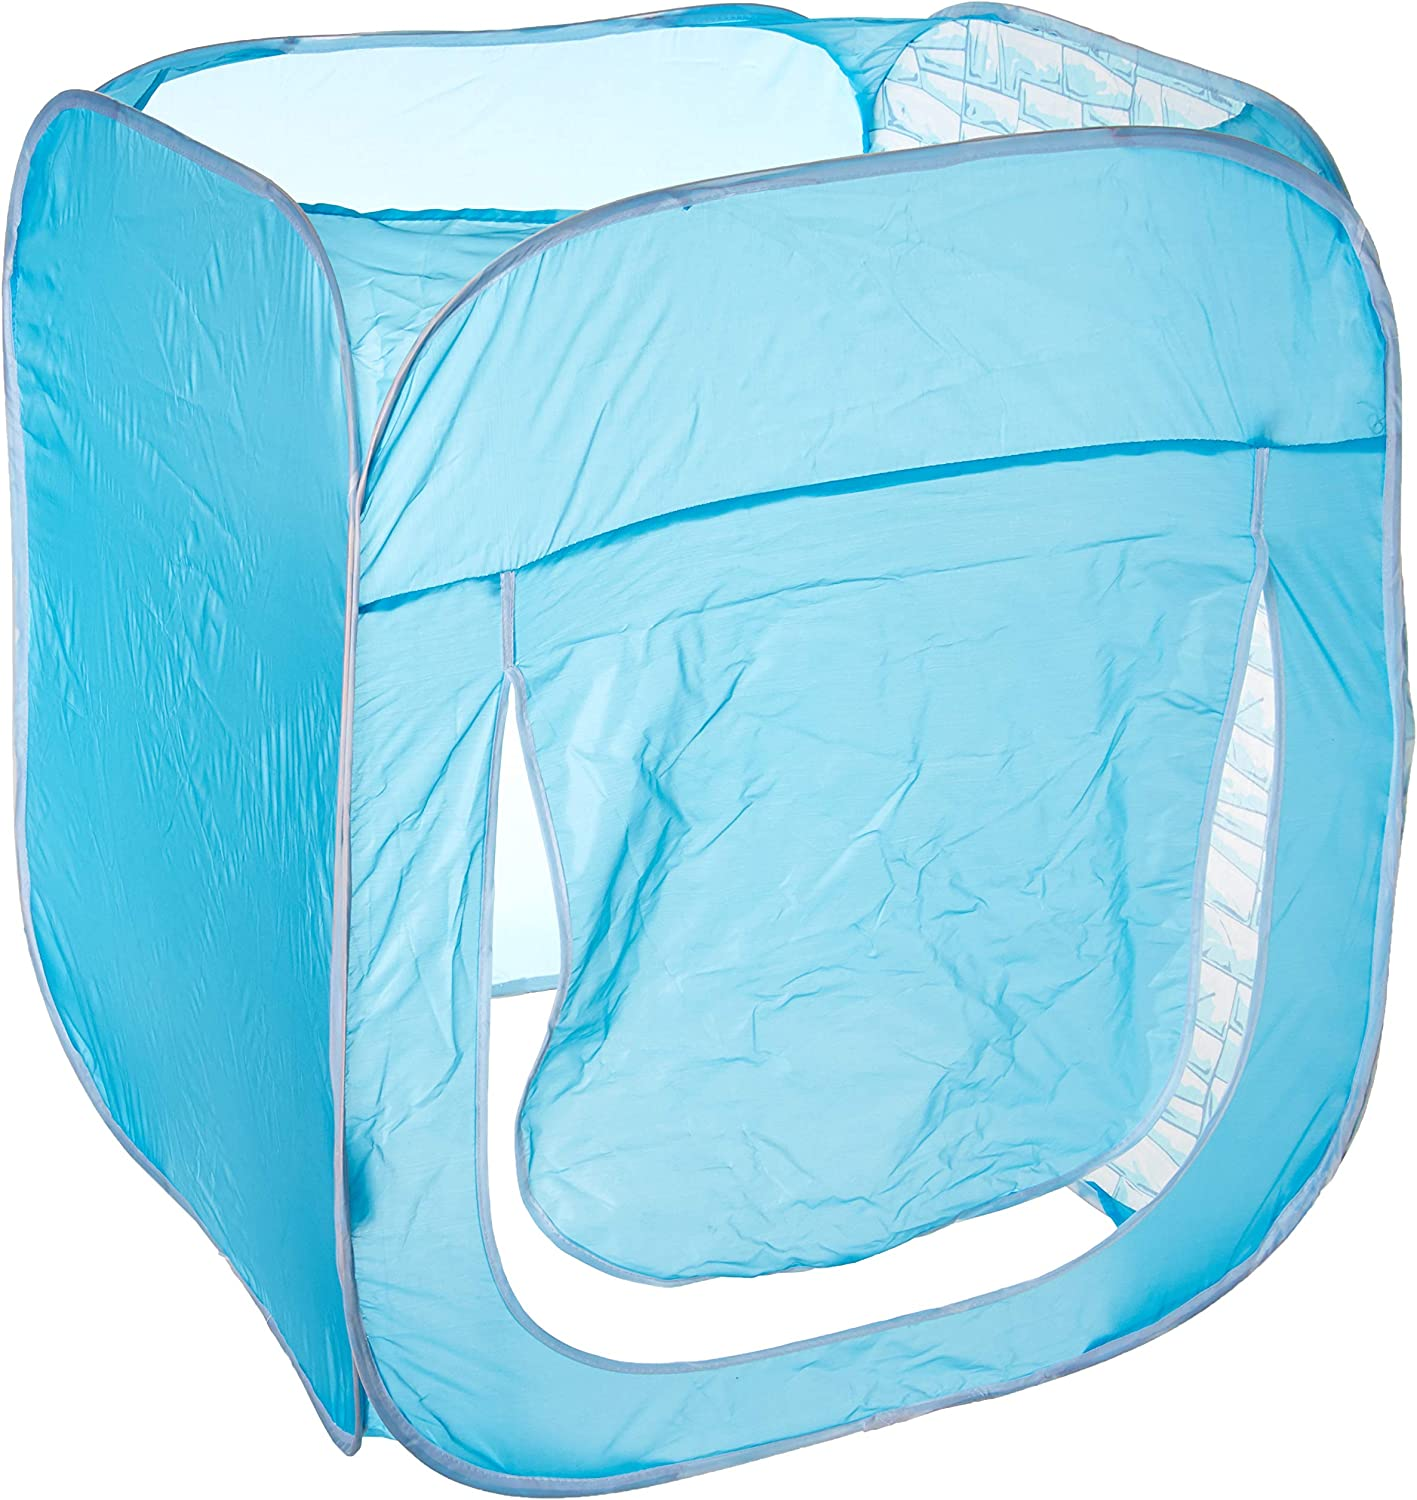 Discovery Kids Pop up Igloo Play Tent by Discover Kids